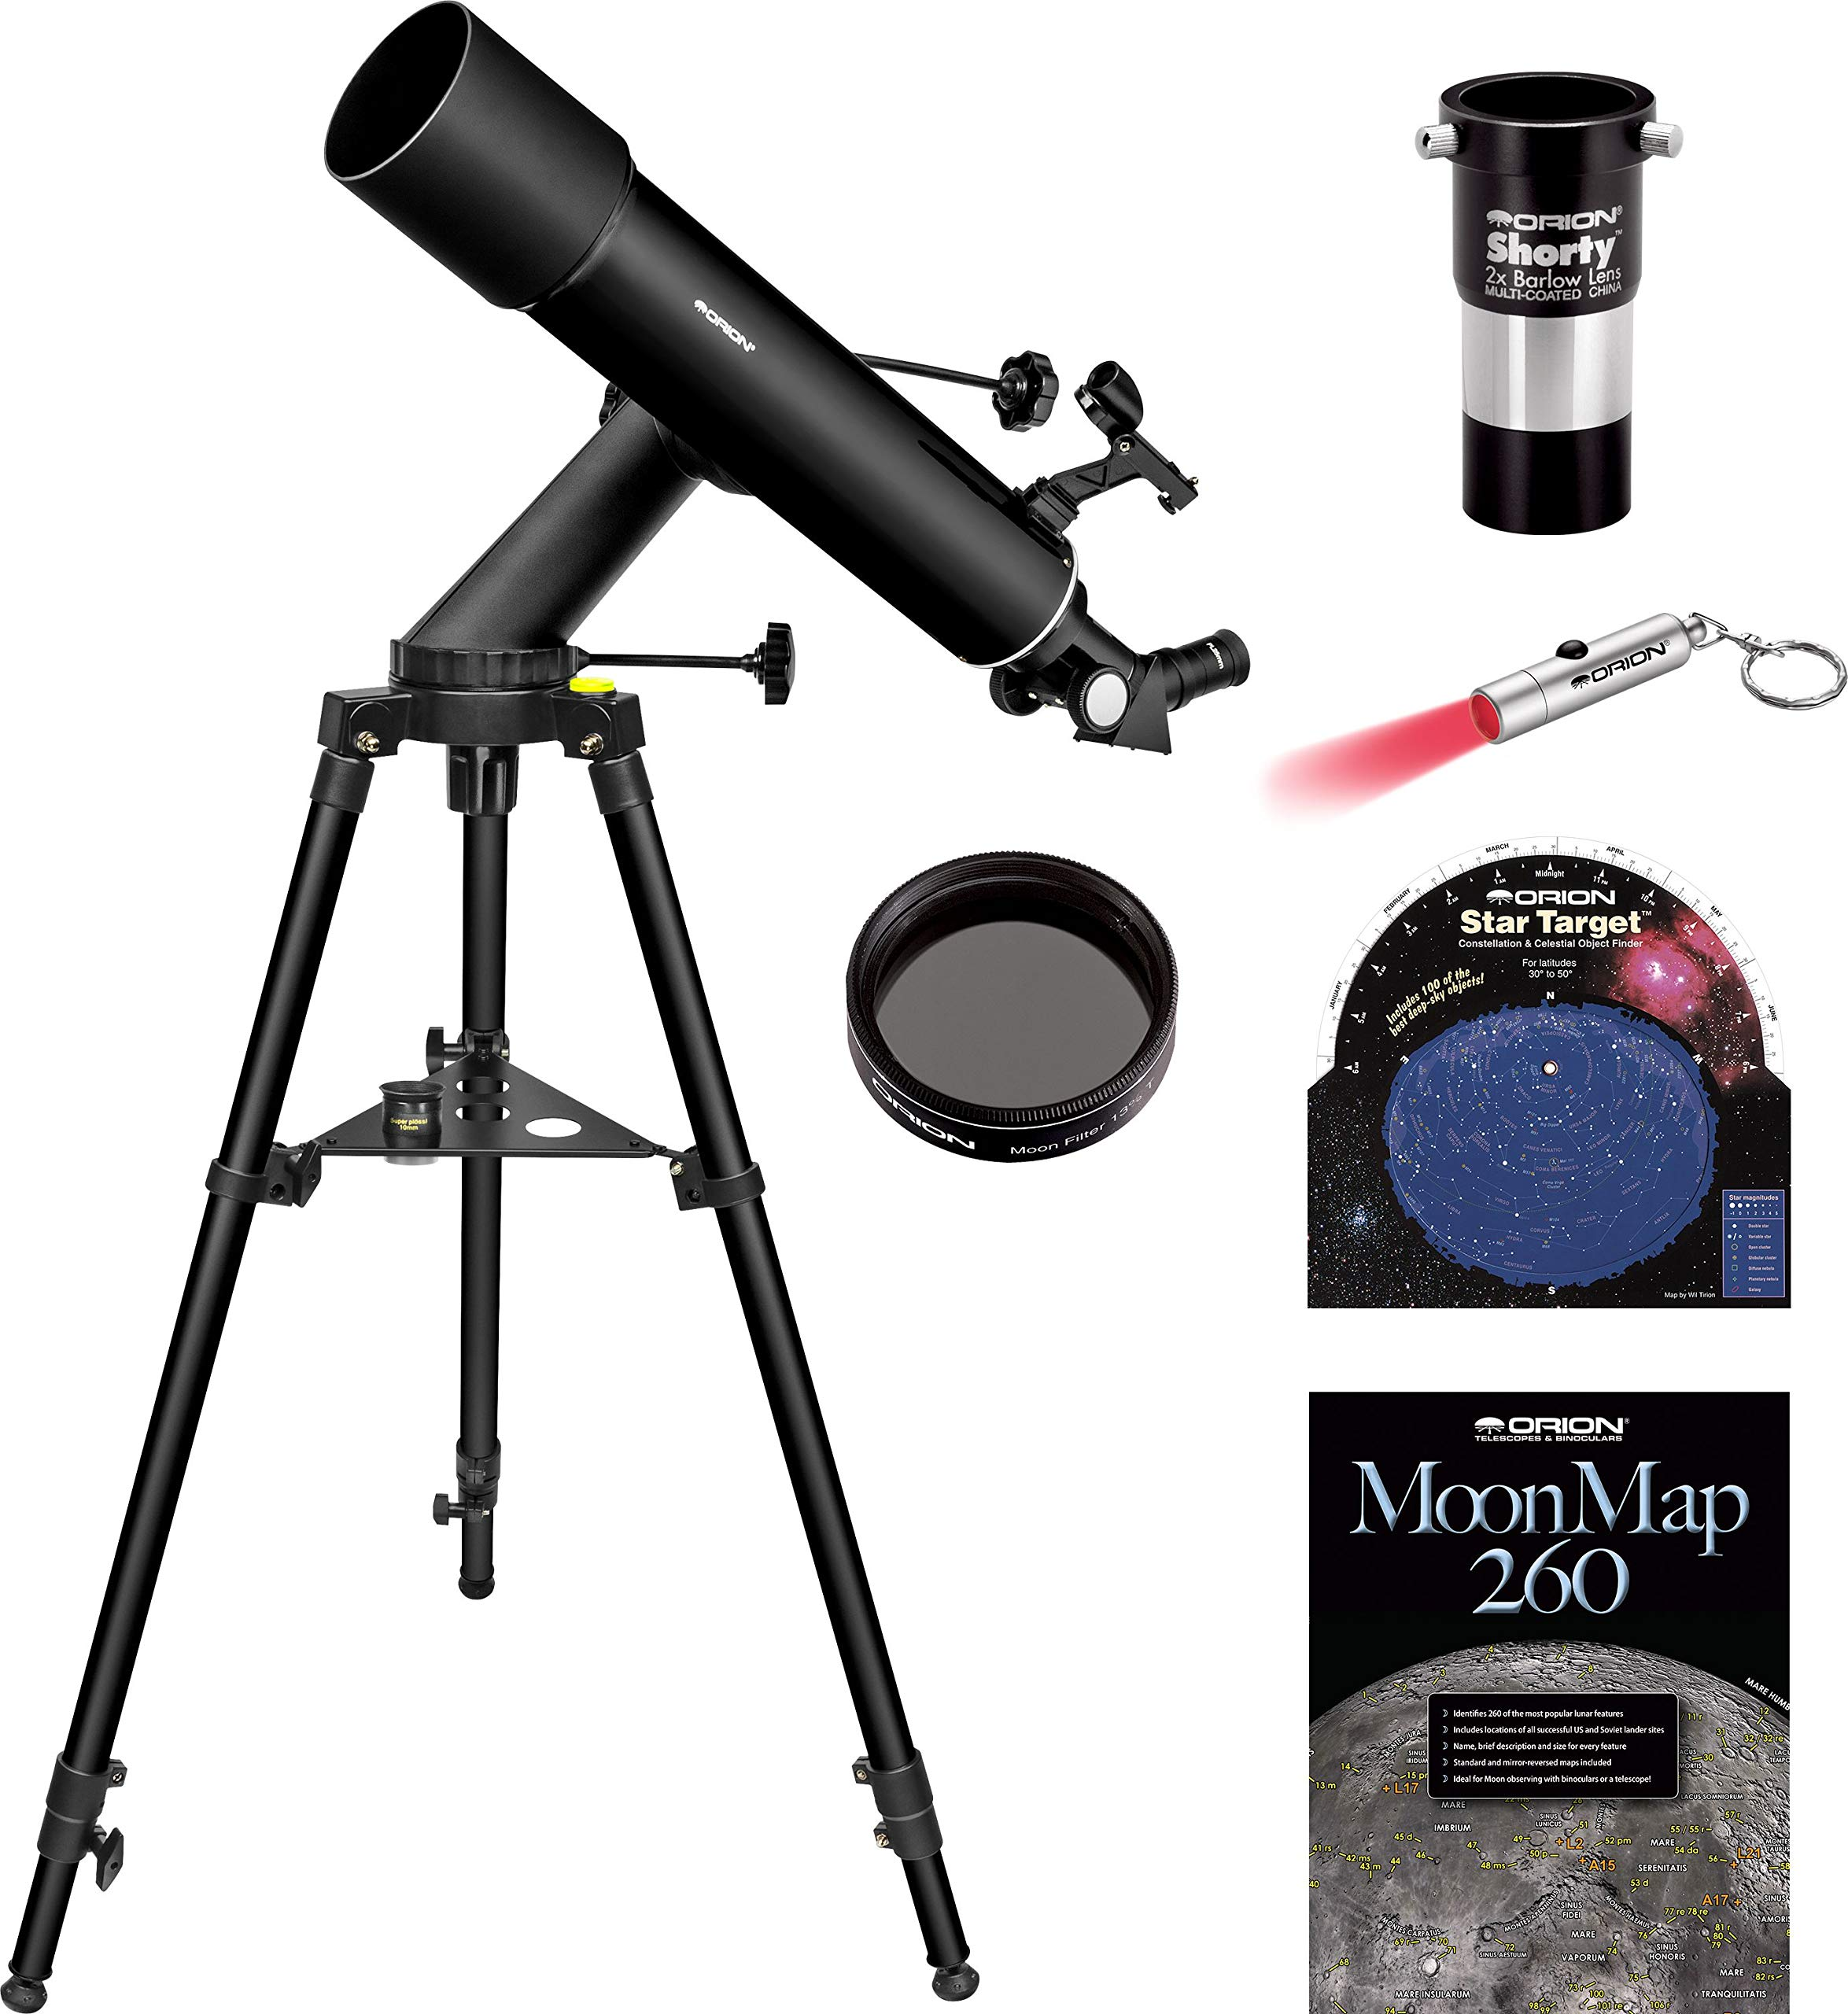 Orion VersaGo E-Series 90mm Altaz Refractor Telescope Kit by Orion